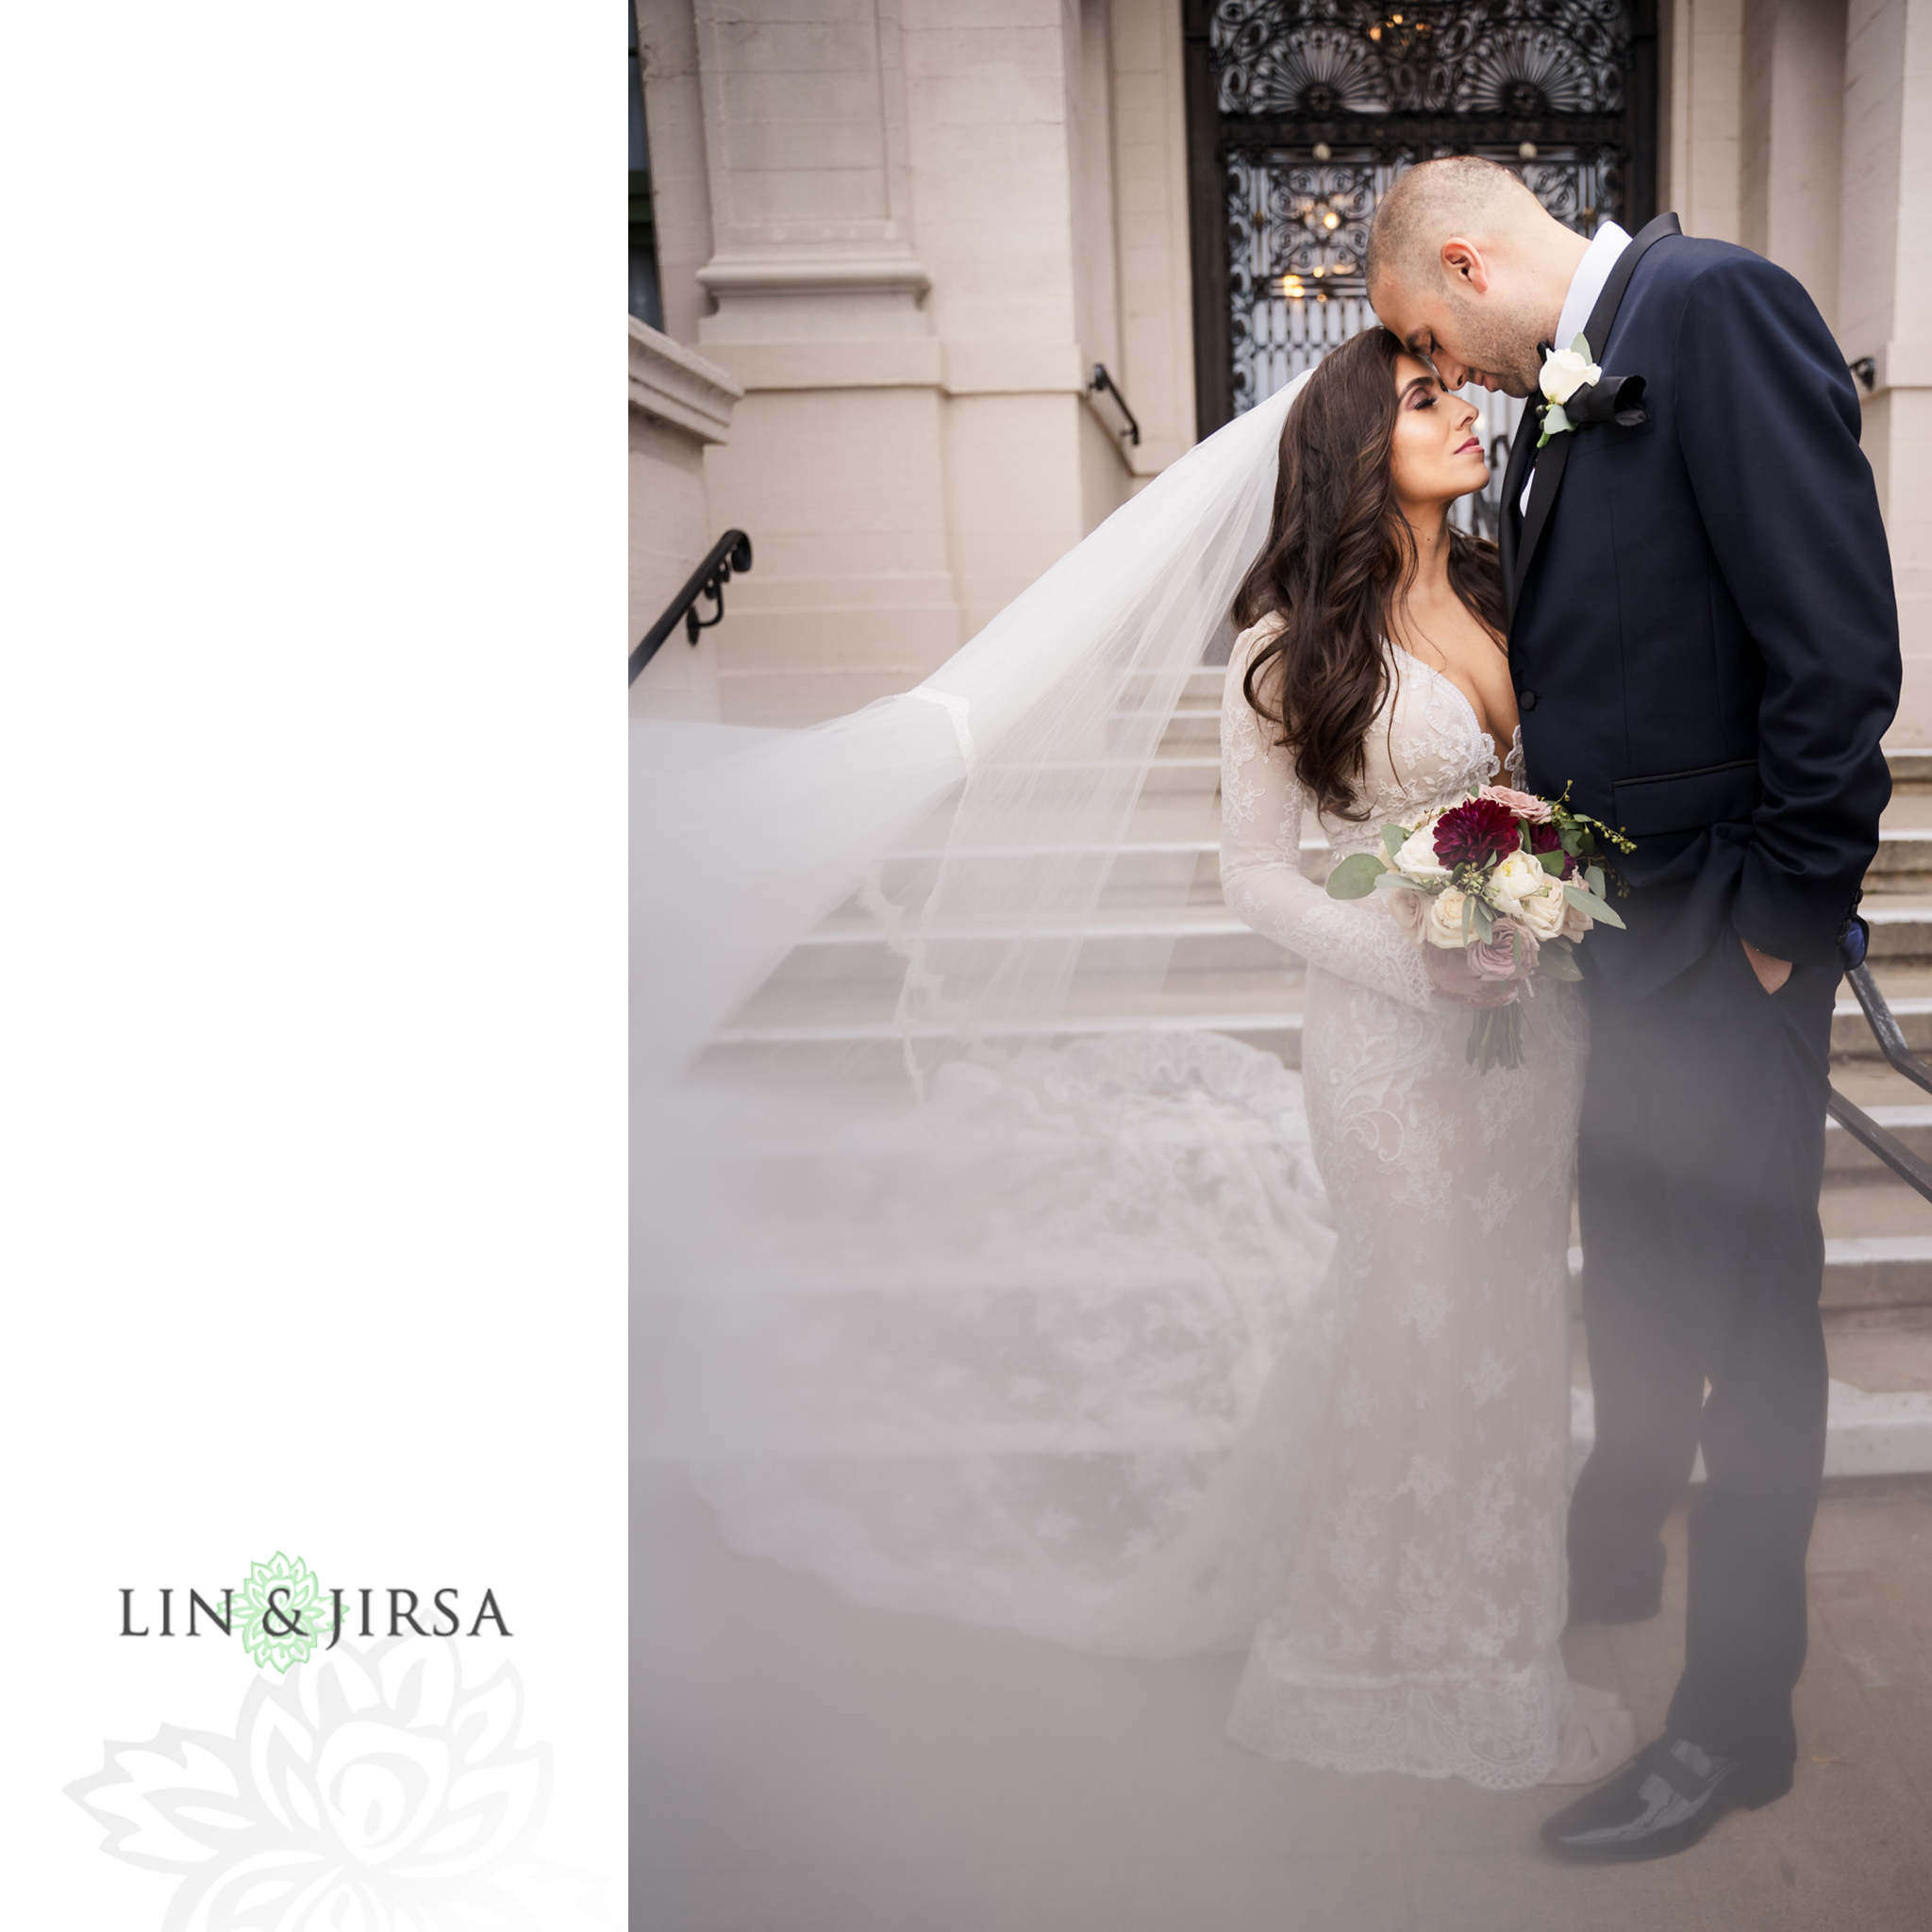 31 The Ebell Los Angeles Multicultural Wedding Photography